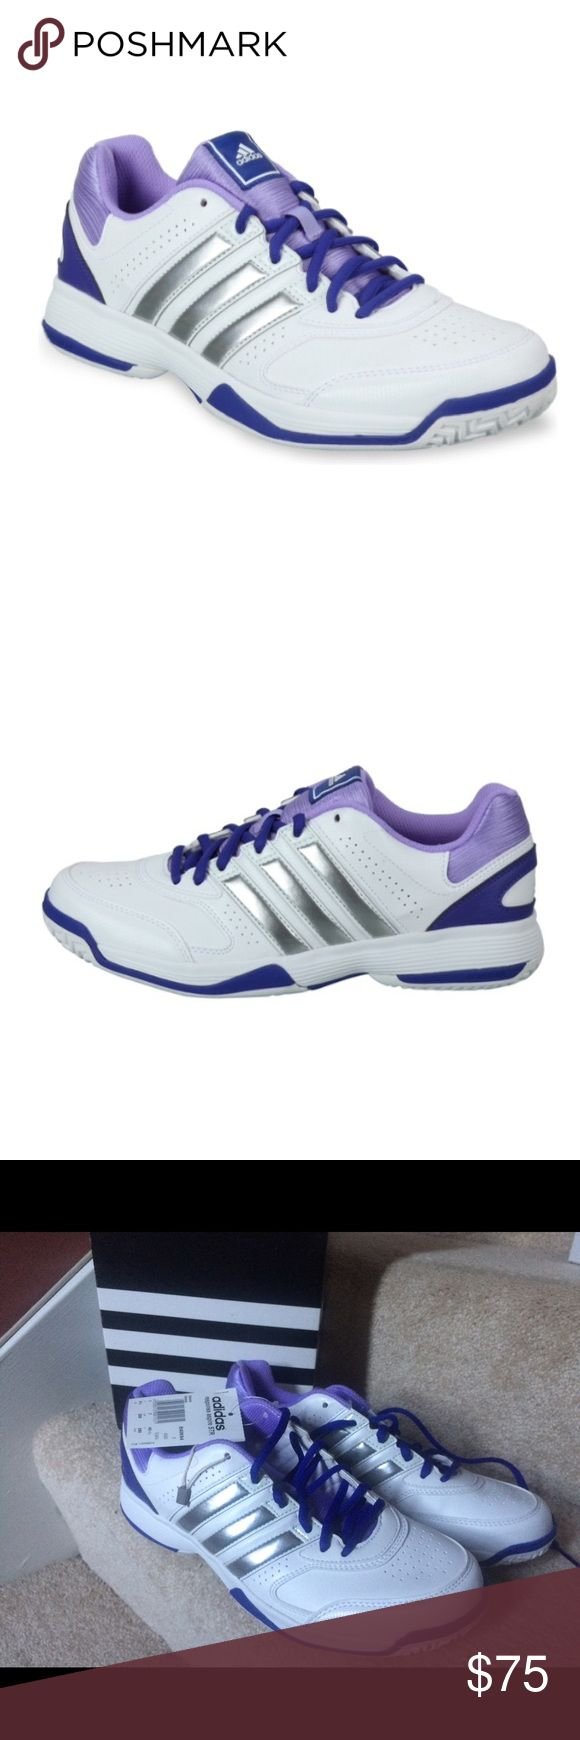 New Adidas response aspire str Women Tennis  Shoes Brand new in box Authentic!!! Women size us 8.5  Ship within one day ‼️price firm‼️ No offers‼️ Adidas Shoes Athletic Shoes